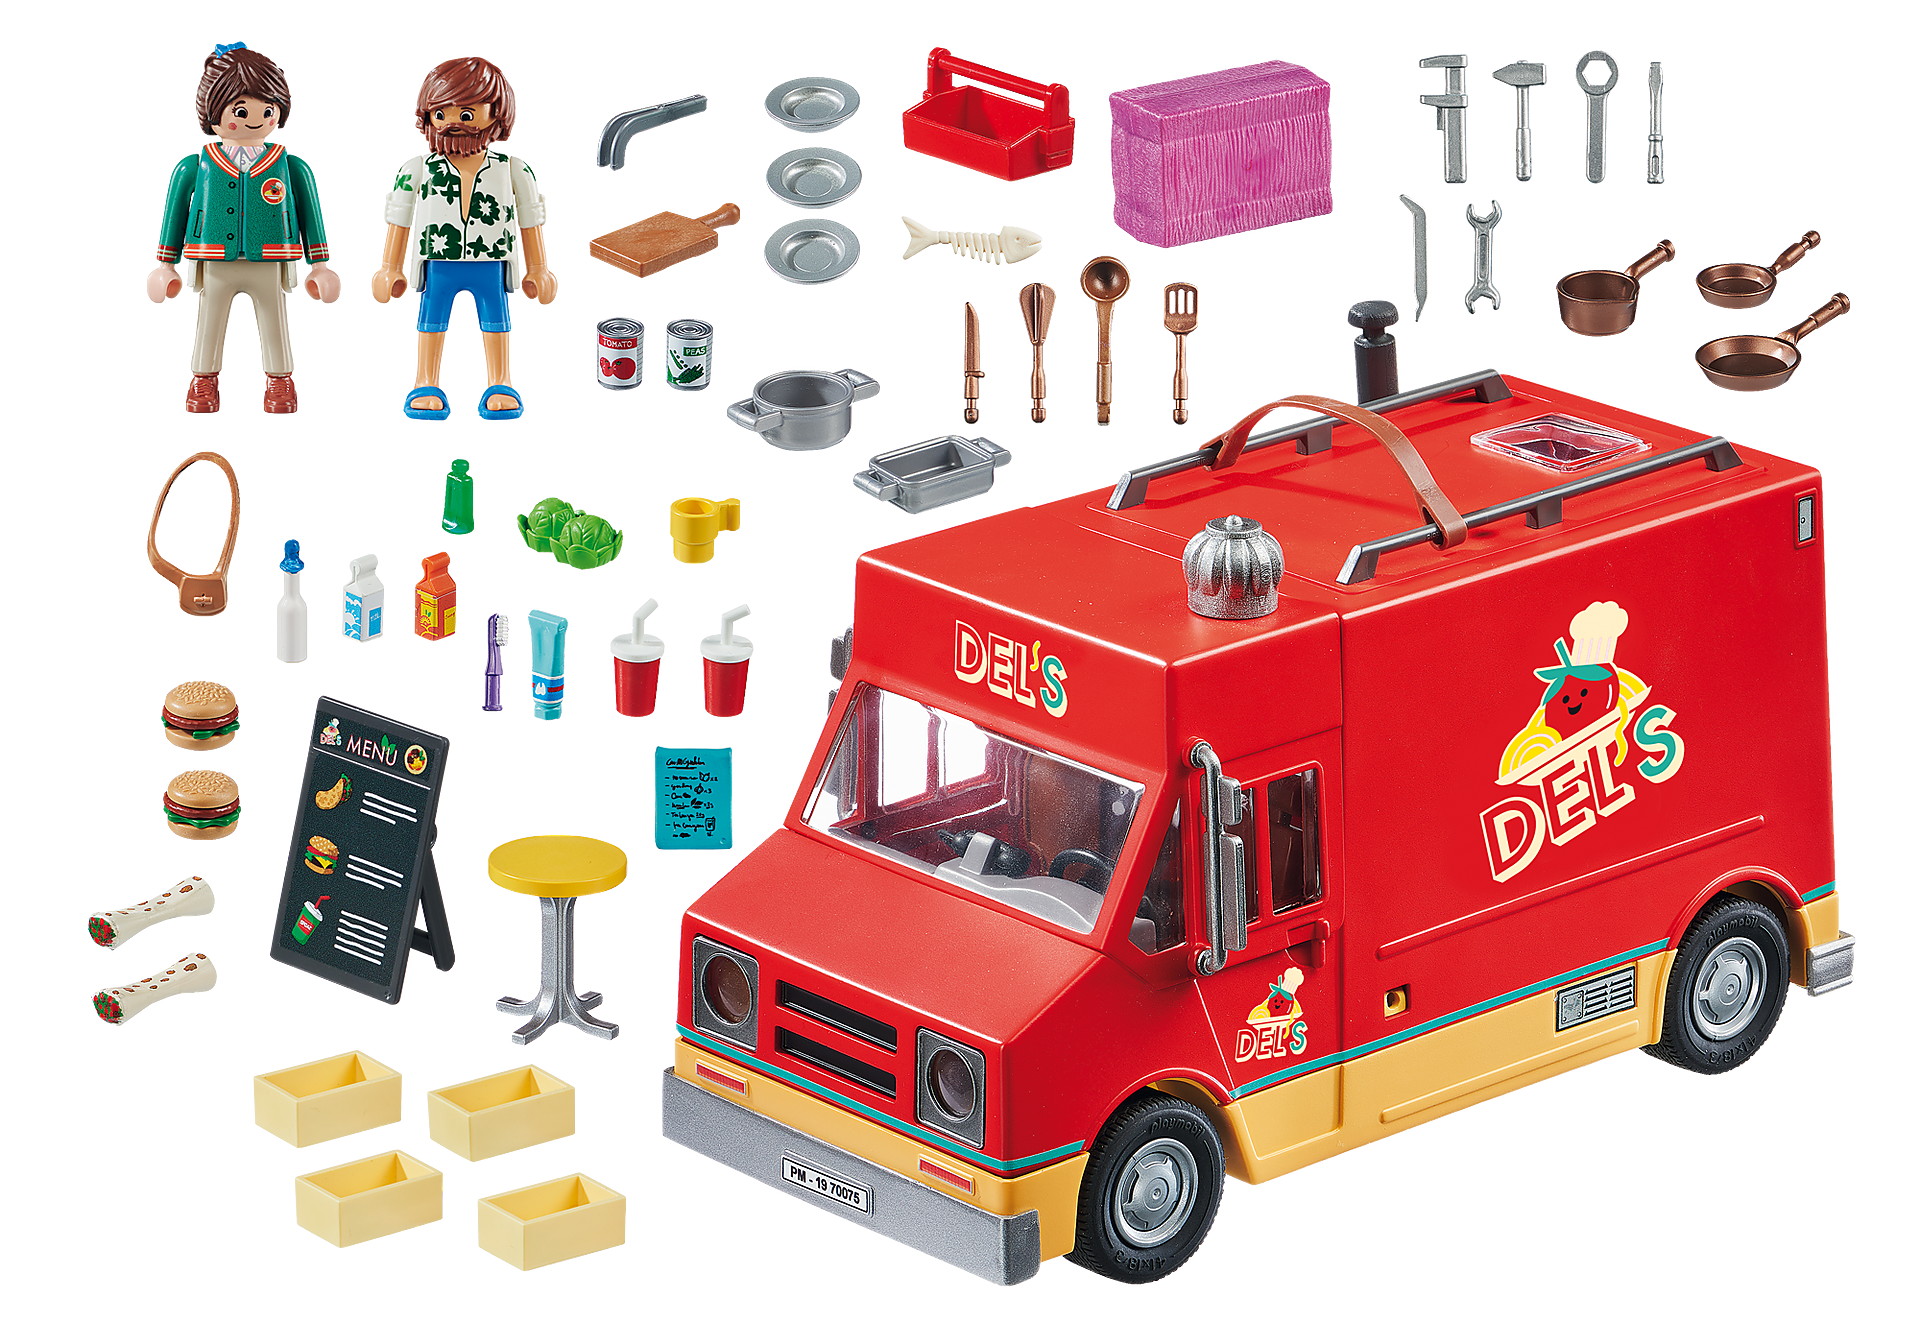 70075 PLAYMOBIL: THE MOVIE Food Truck de Del  zoom image3